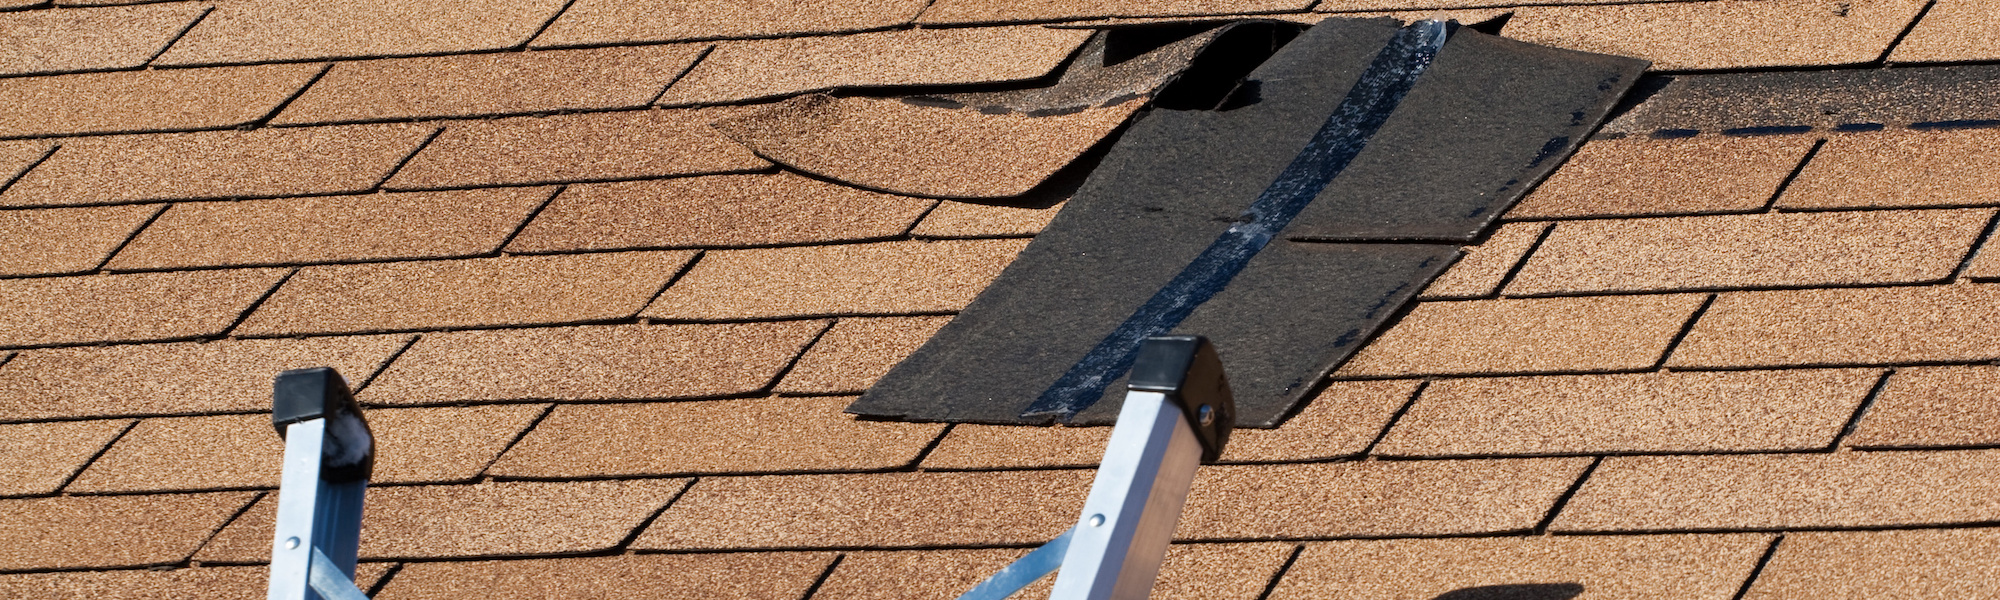 Roof Maintenance Services - Eustis Roofing Company in Lake County, FL